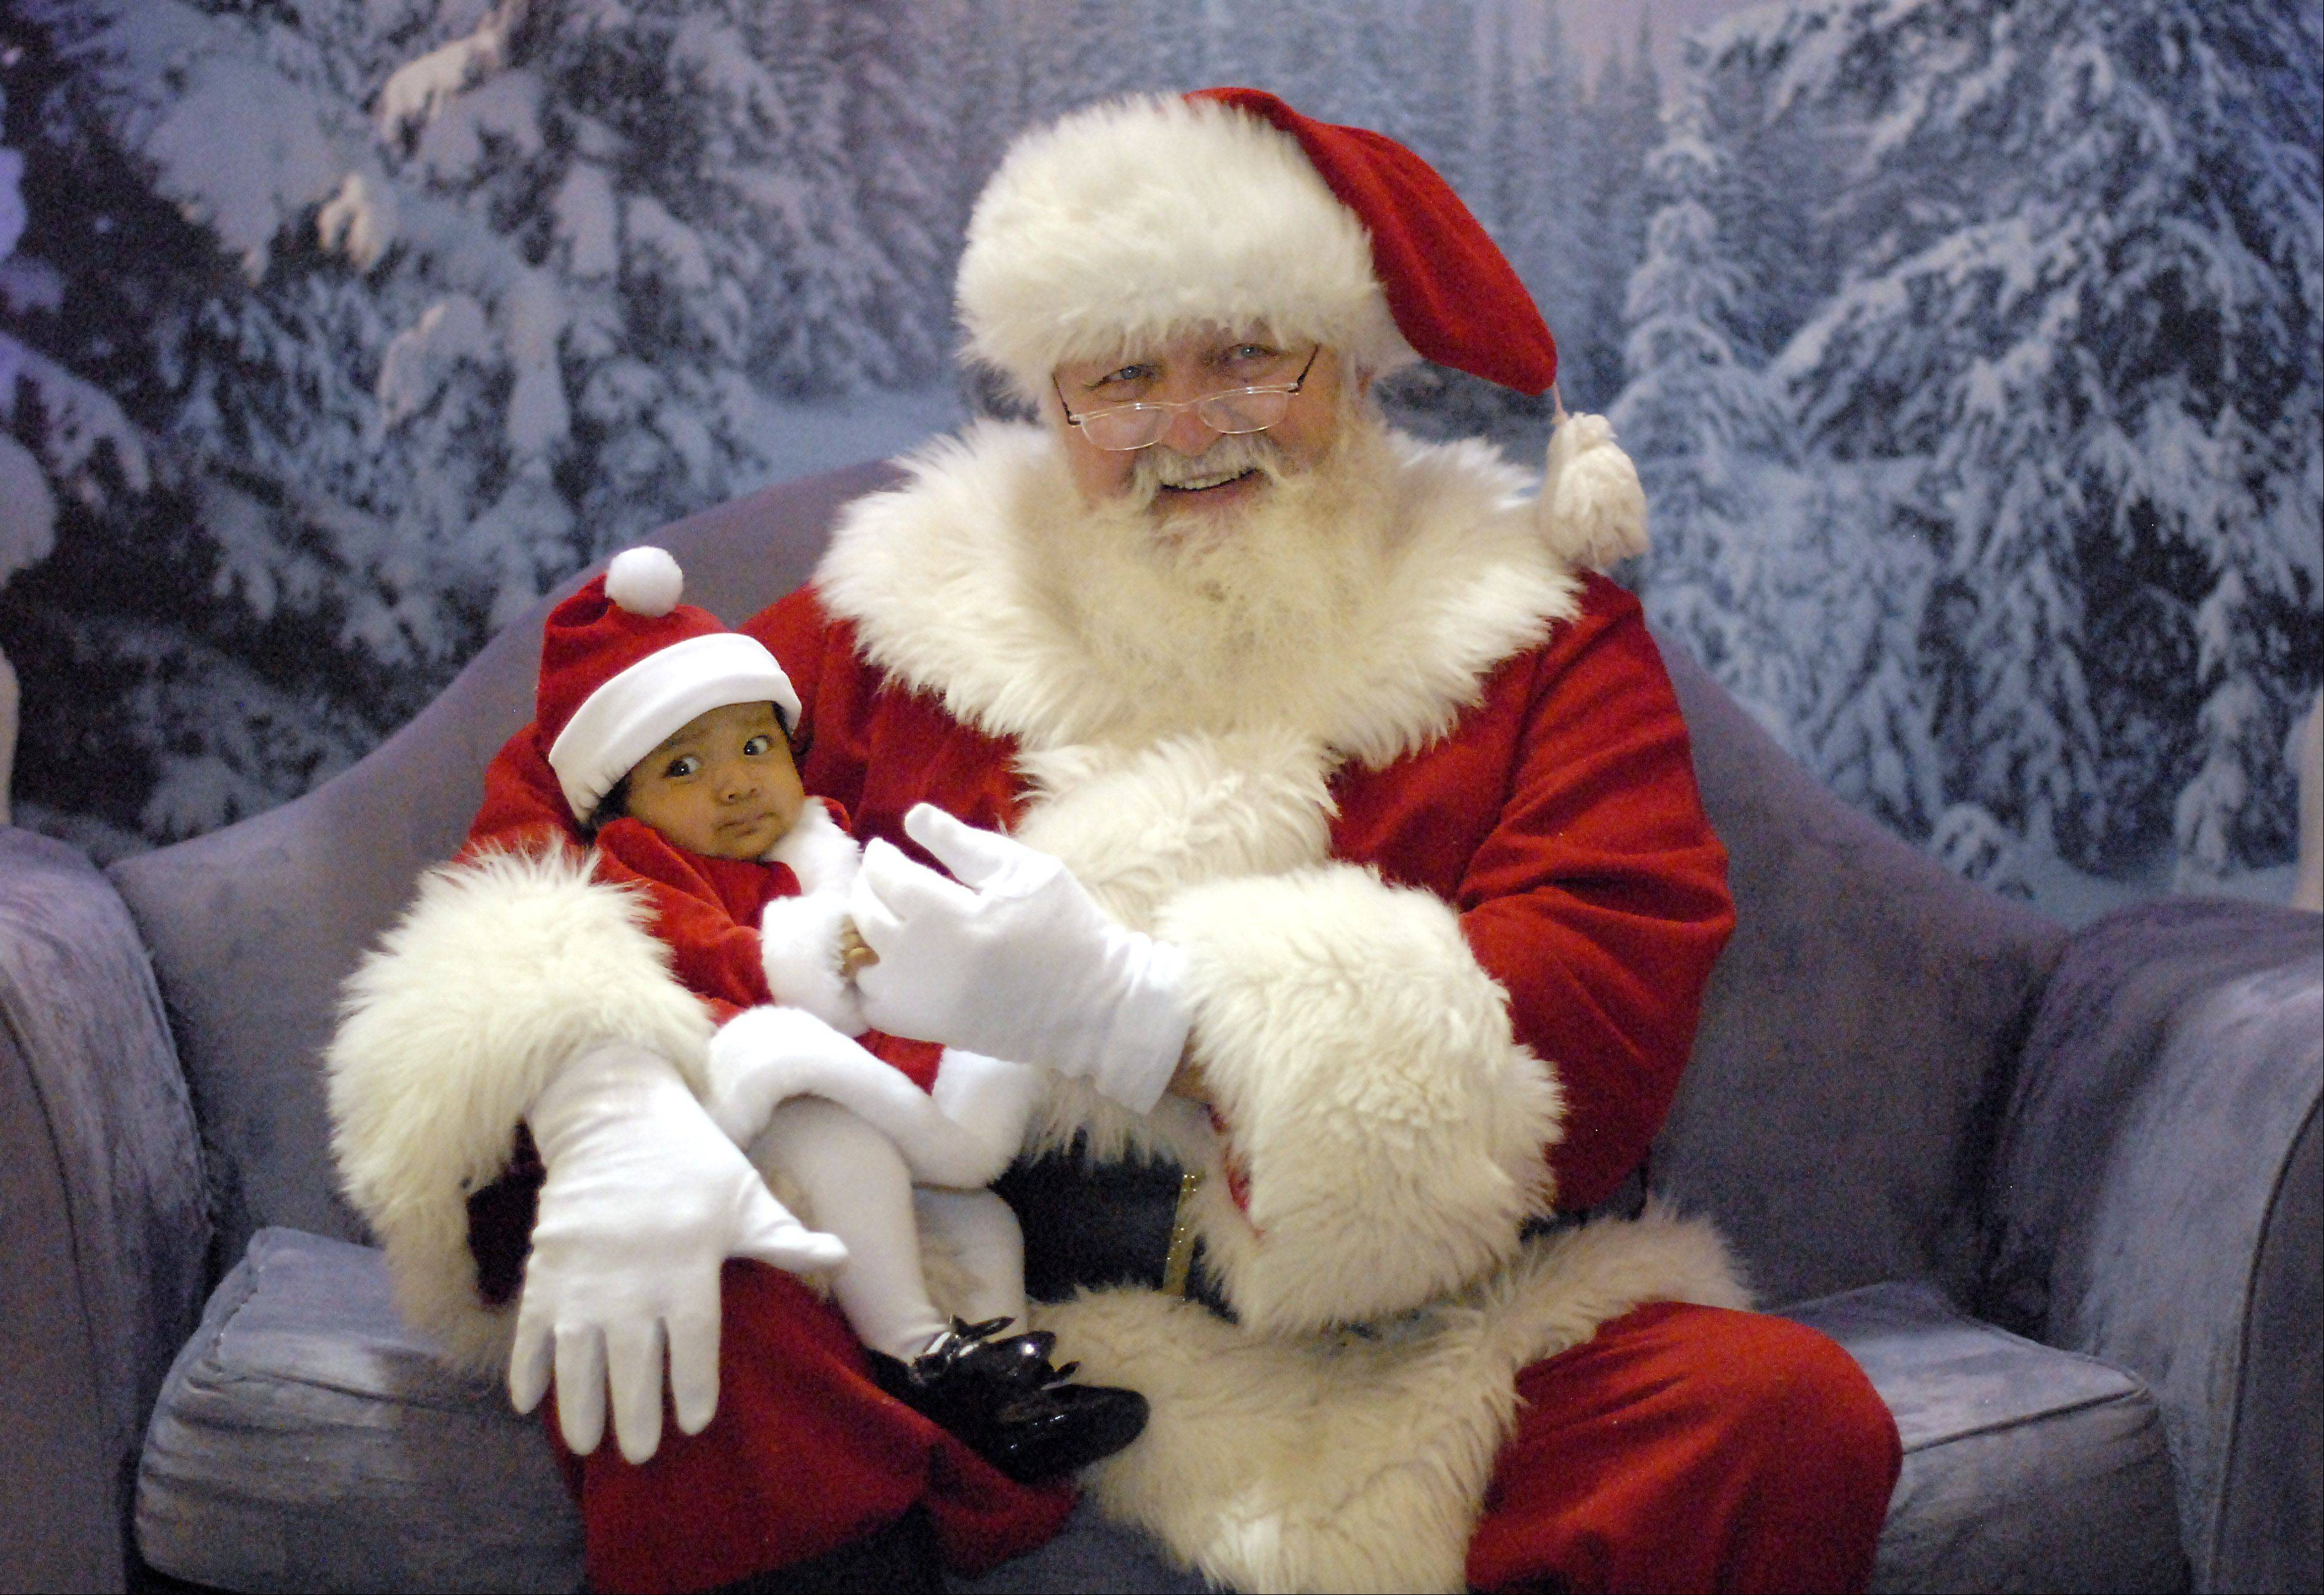 Santa Claus poses for a photo with 3-month-old Katie Bahena of Bartlett at Woodfield Mall in Schaumburg.